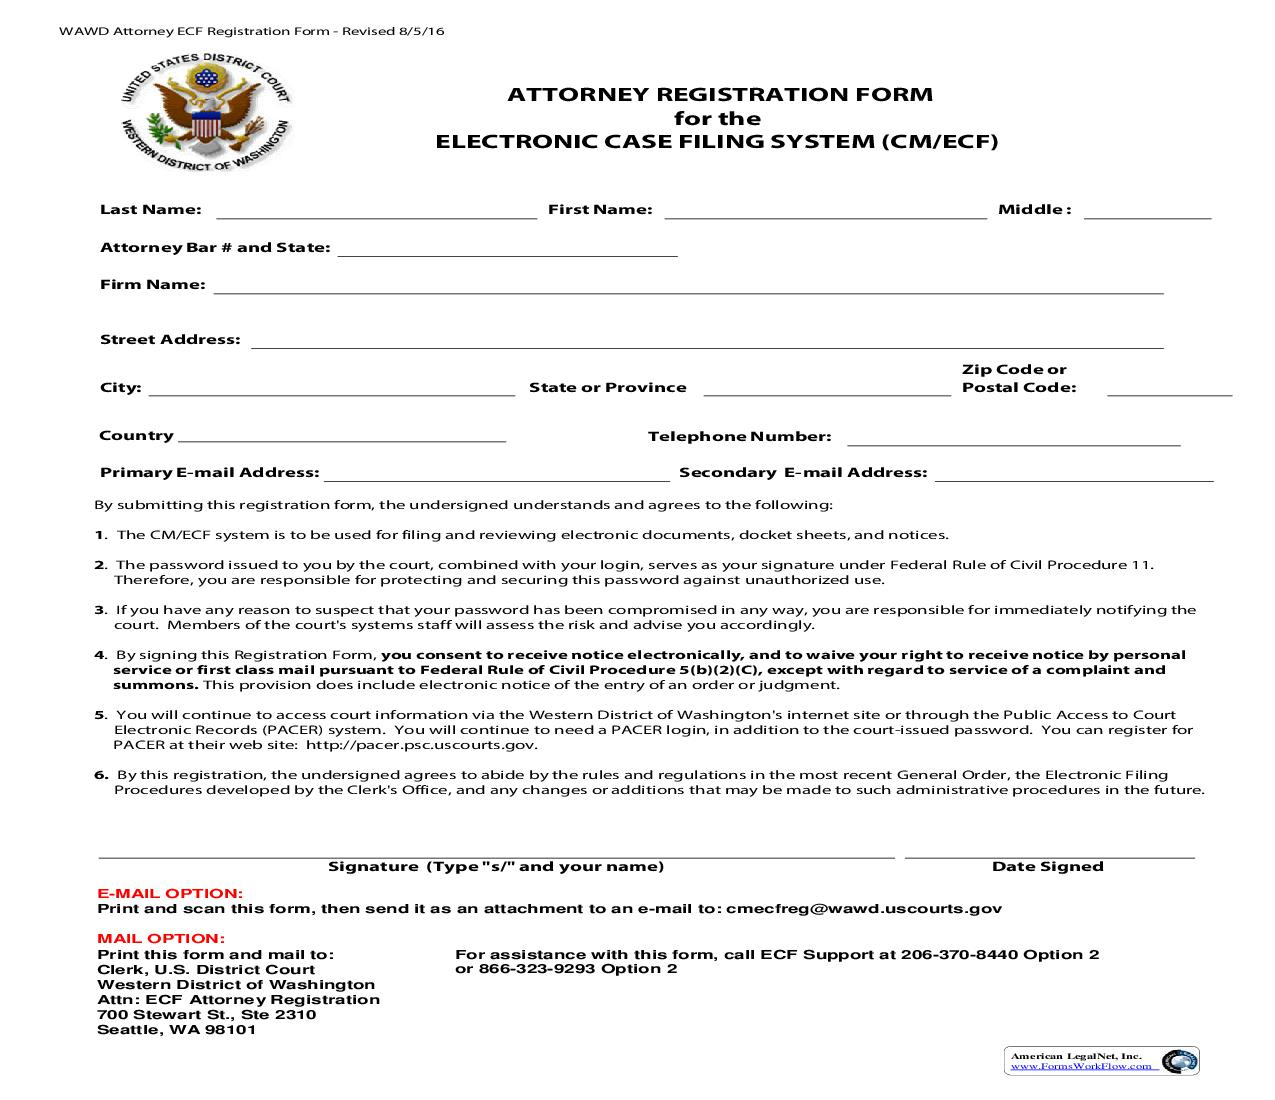 Registration Form For The Electronic Case Filing System | Pdf Fpdf Doc Docx | Washington